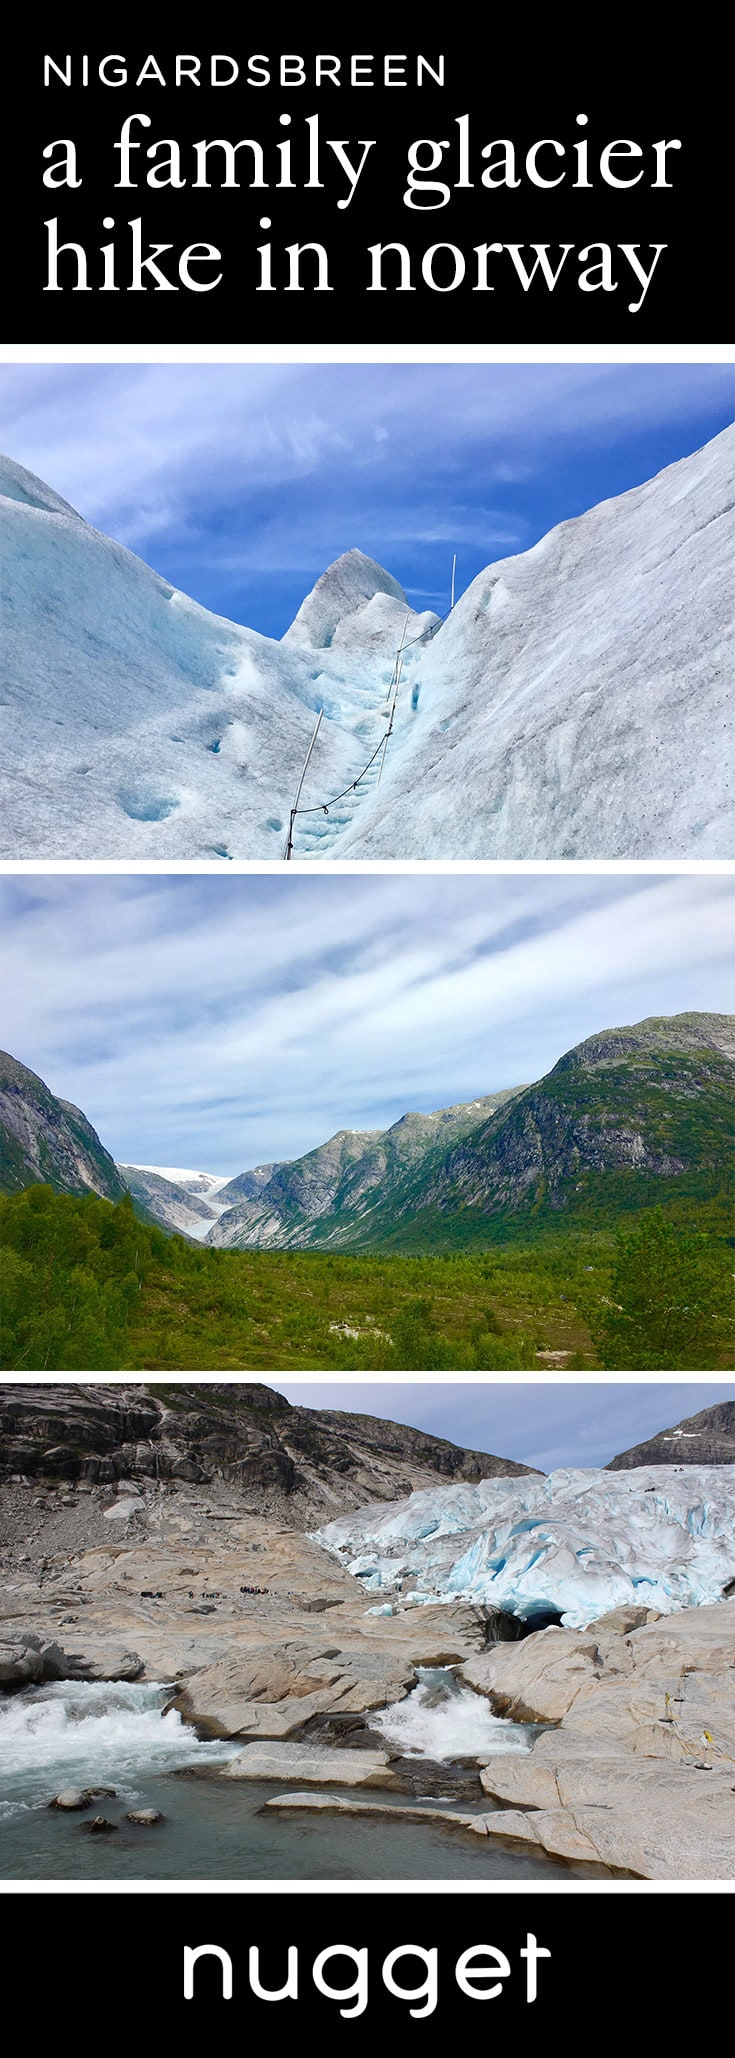 Nigardsbreen: A Family Glacier Hike in Norway